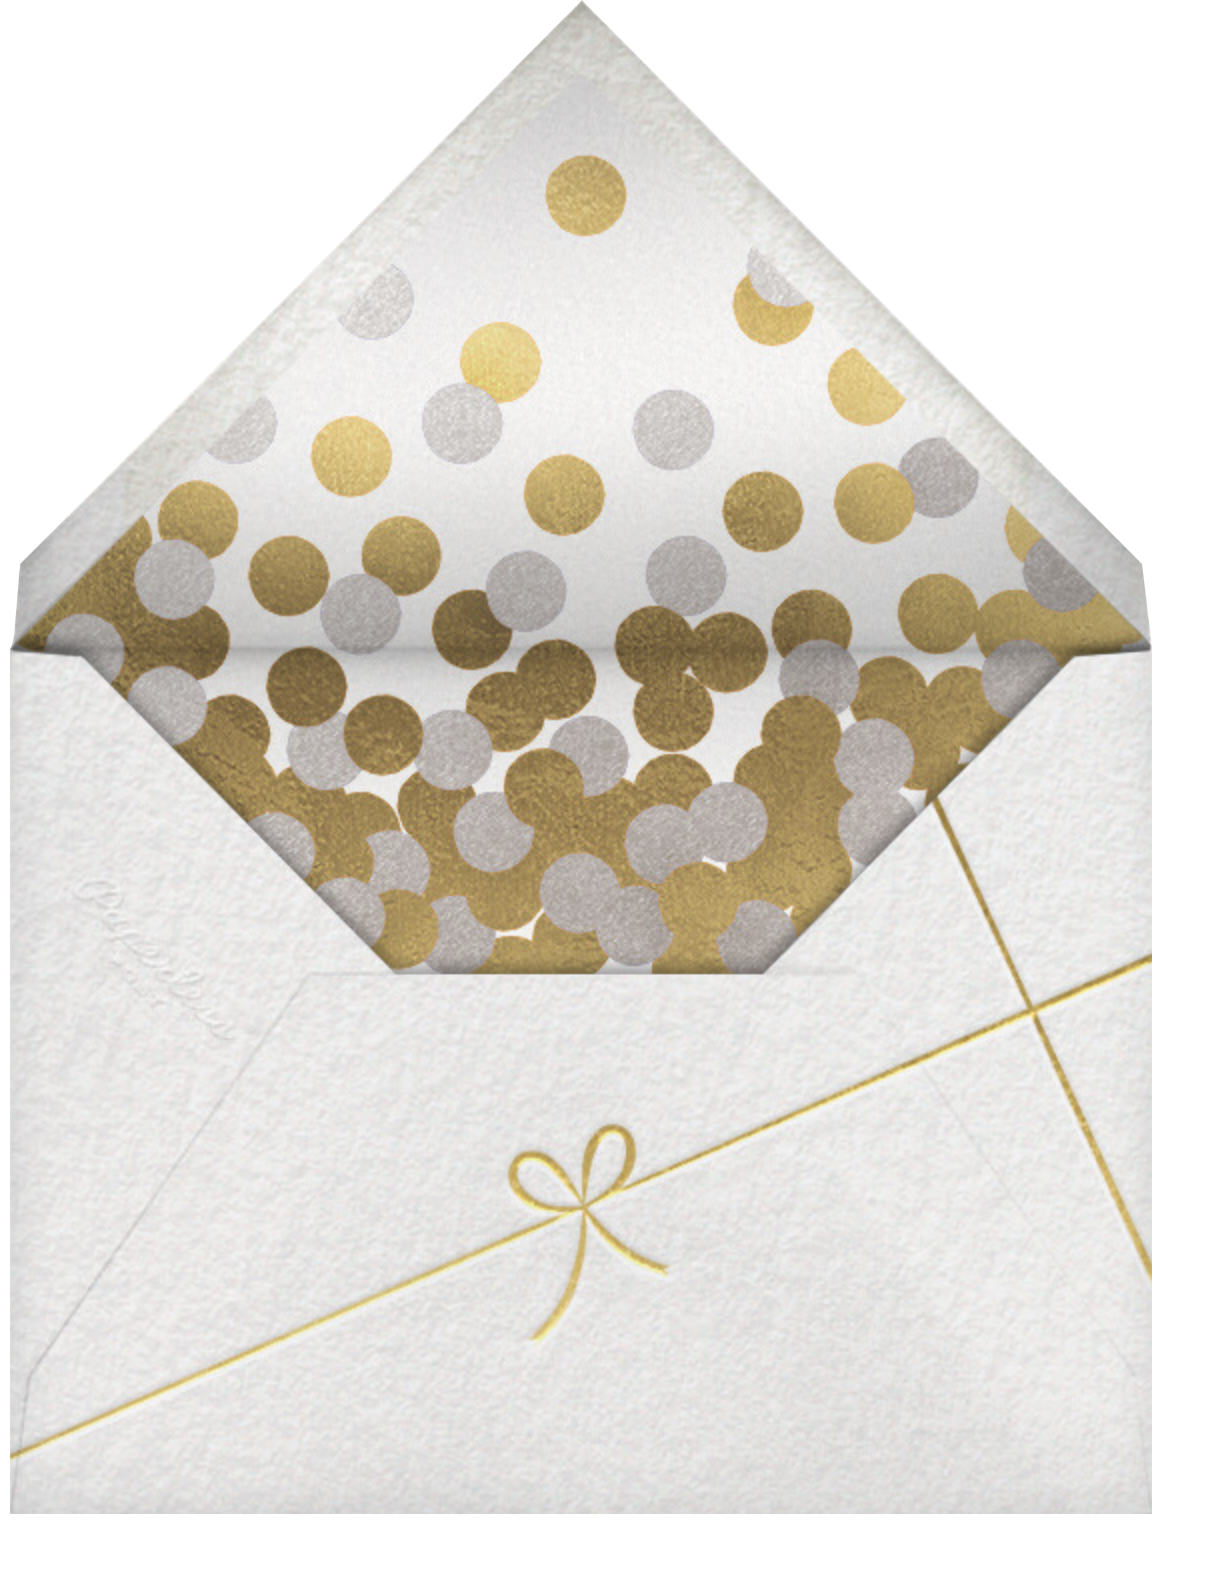 Holiday Finestra (Tall, 5 Photos) - White/Gold - Paperless Post - Holiday cards - envelope back